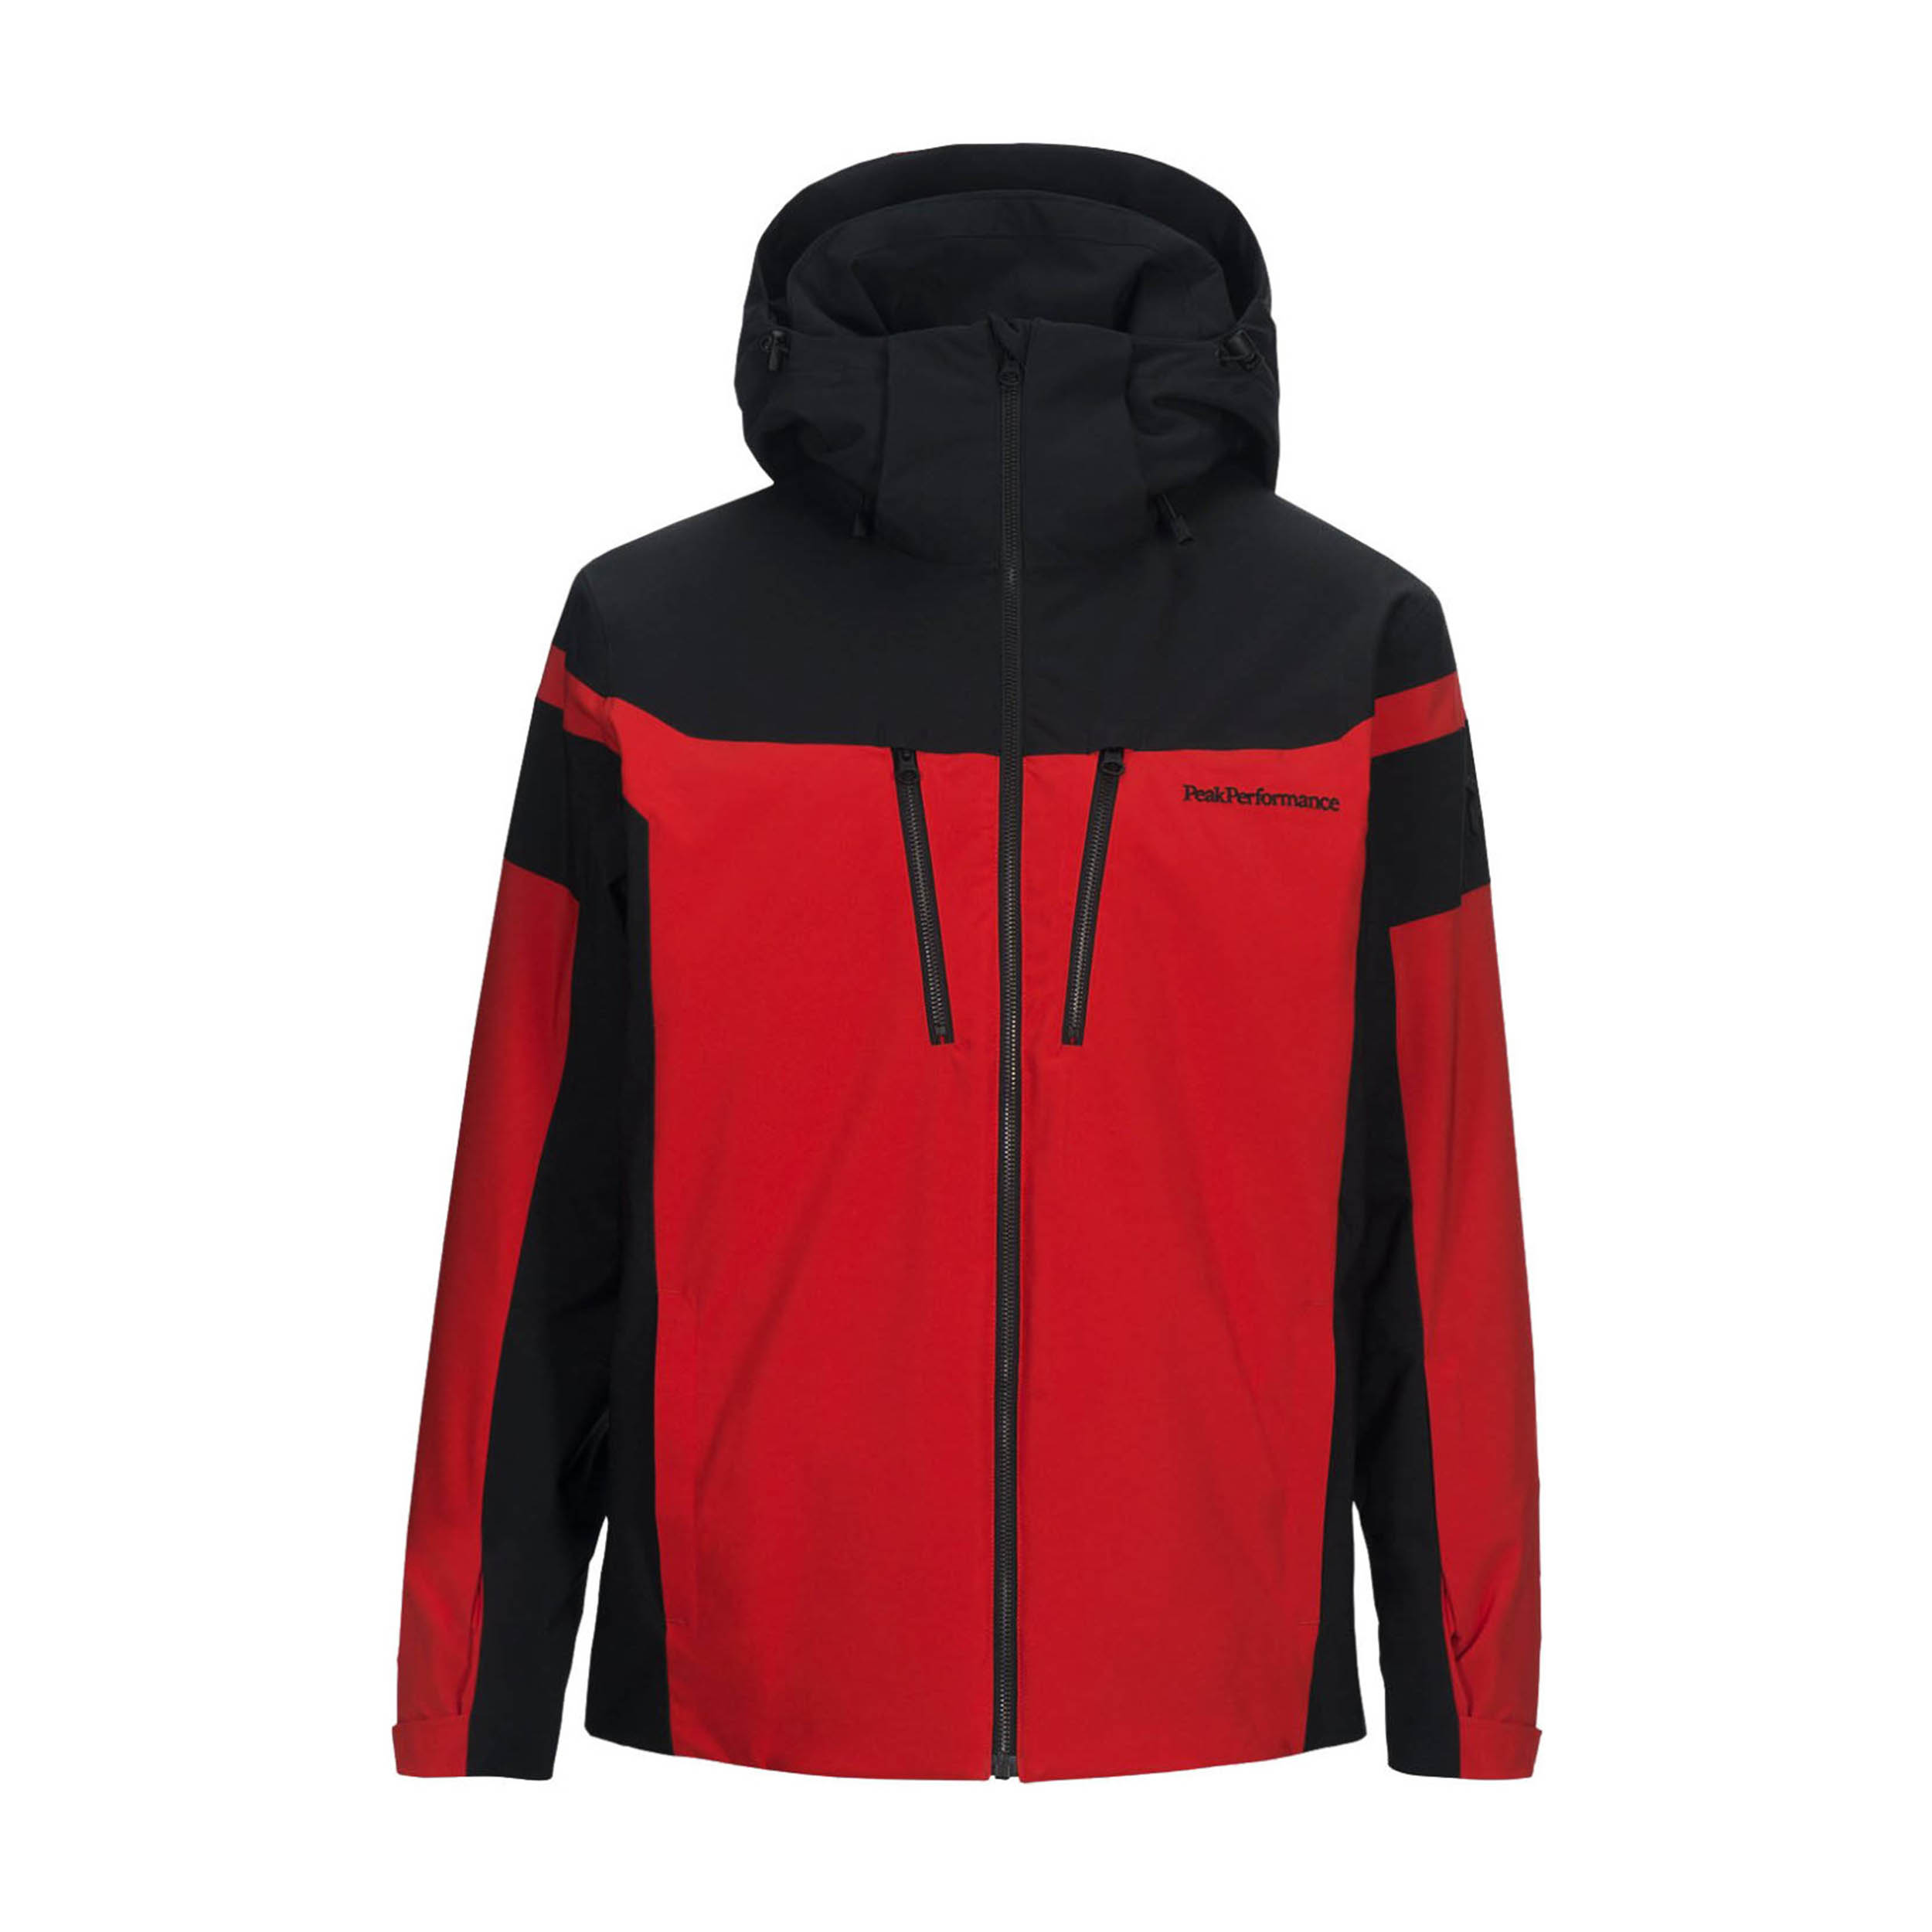 Heren Skijas Peak Performance Lanzo rood